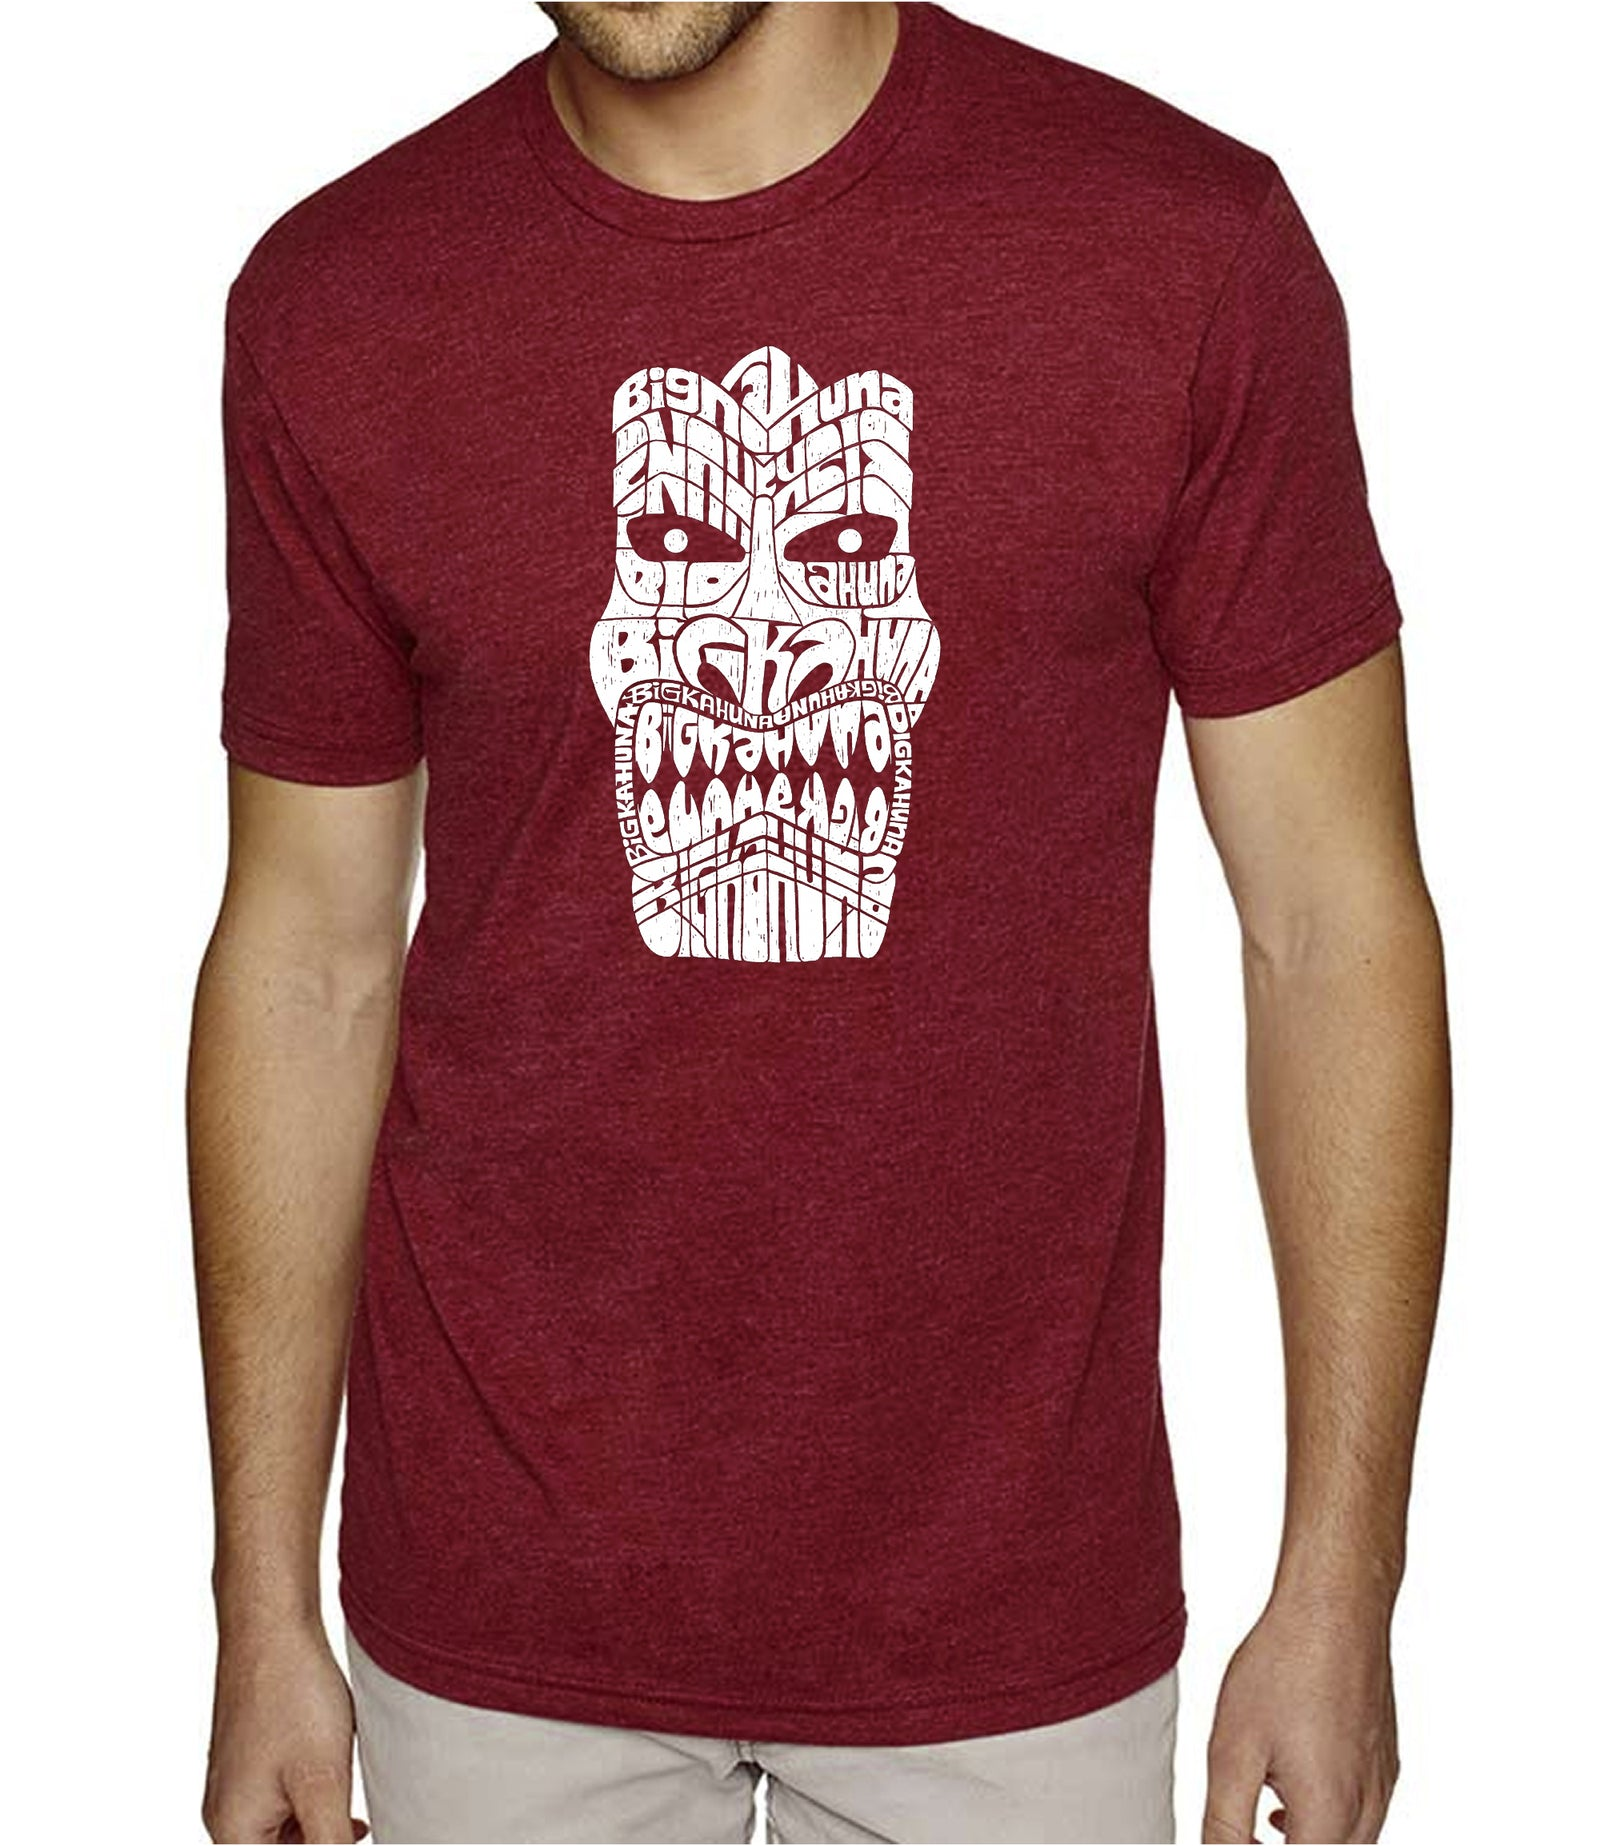 Men's Premium Blend Word Art T-shirt - TIKI - BIG KAHUNA